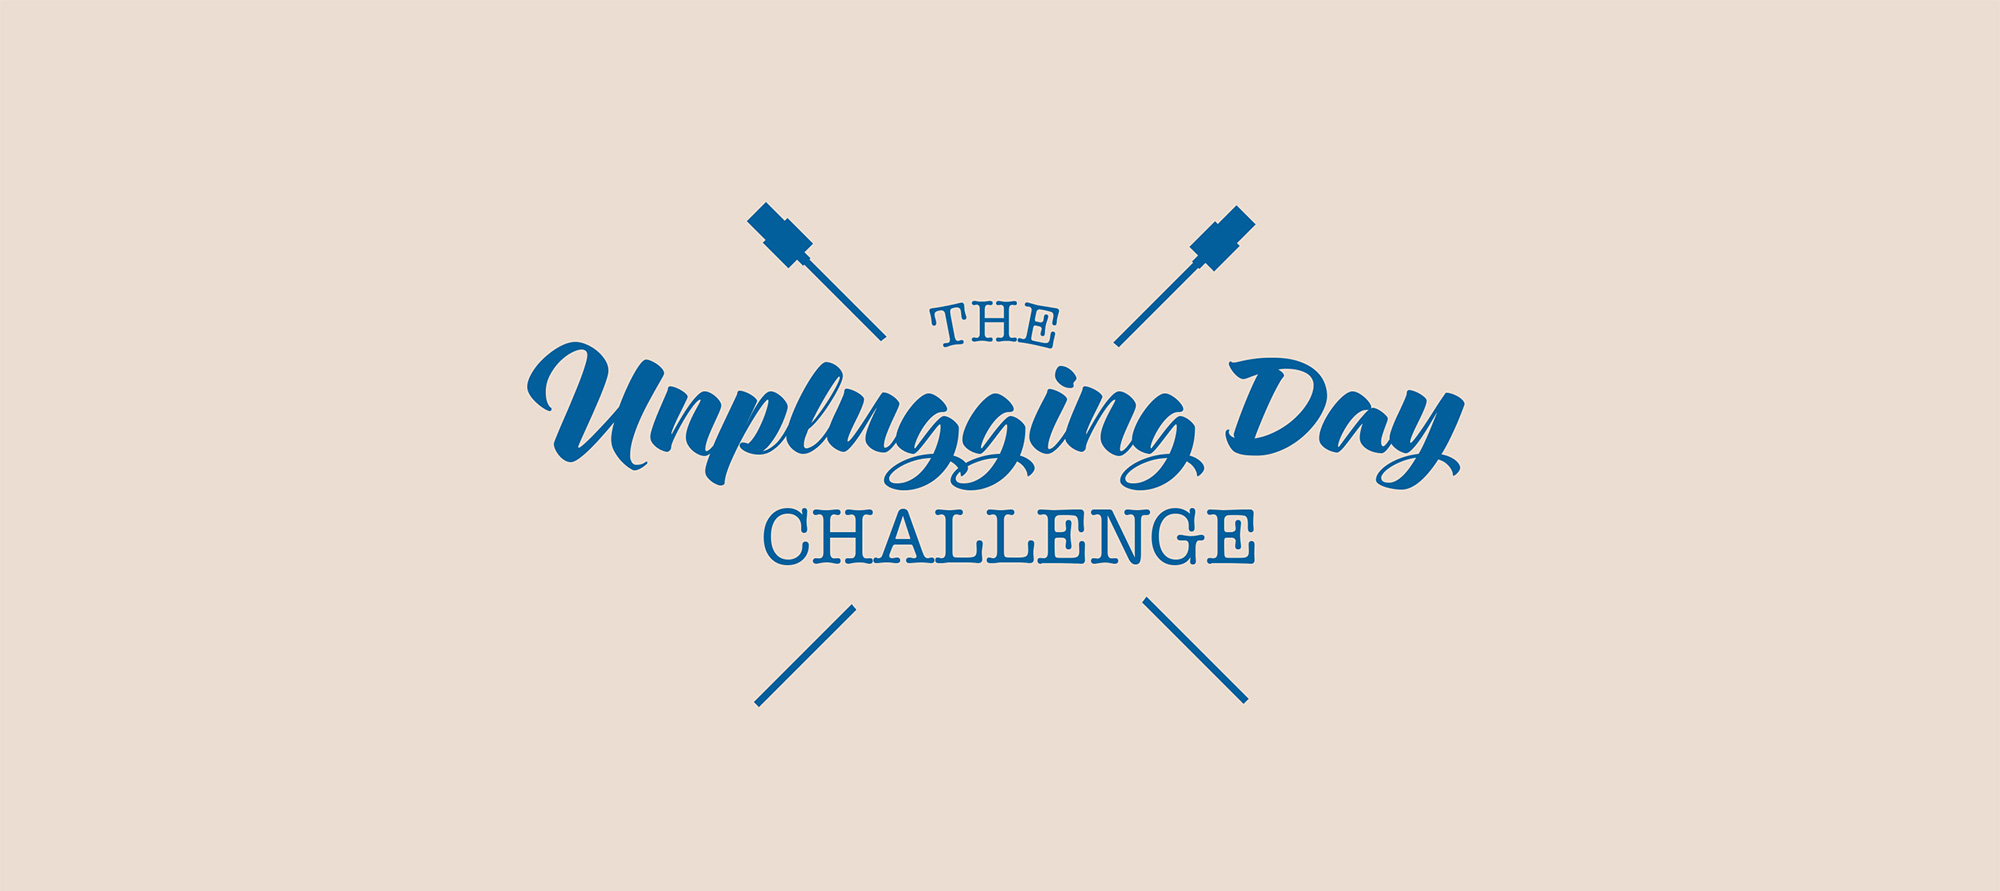 National Unplugging Day challenge